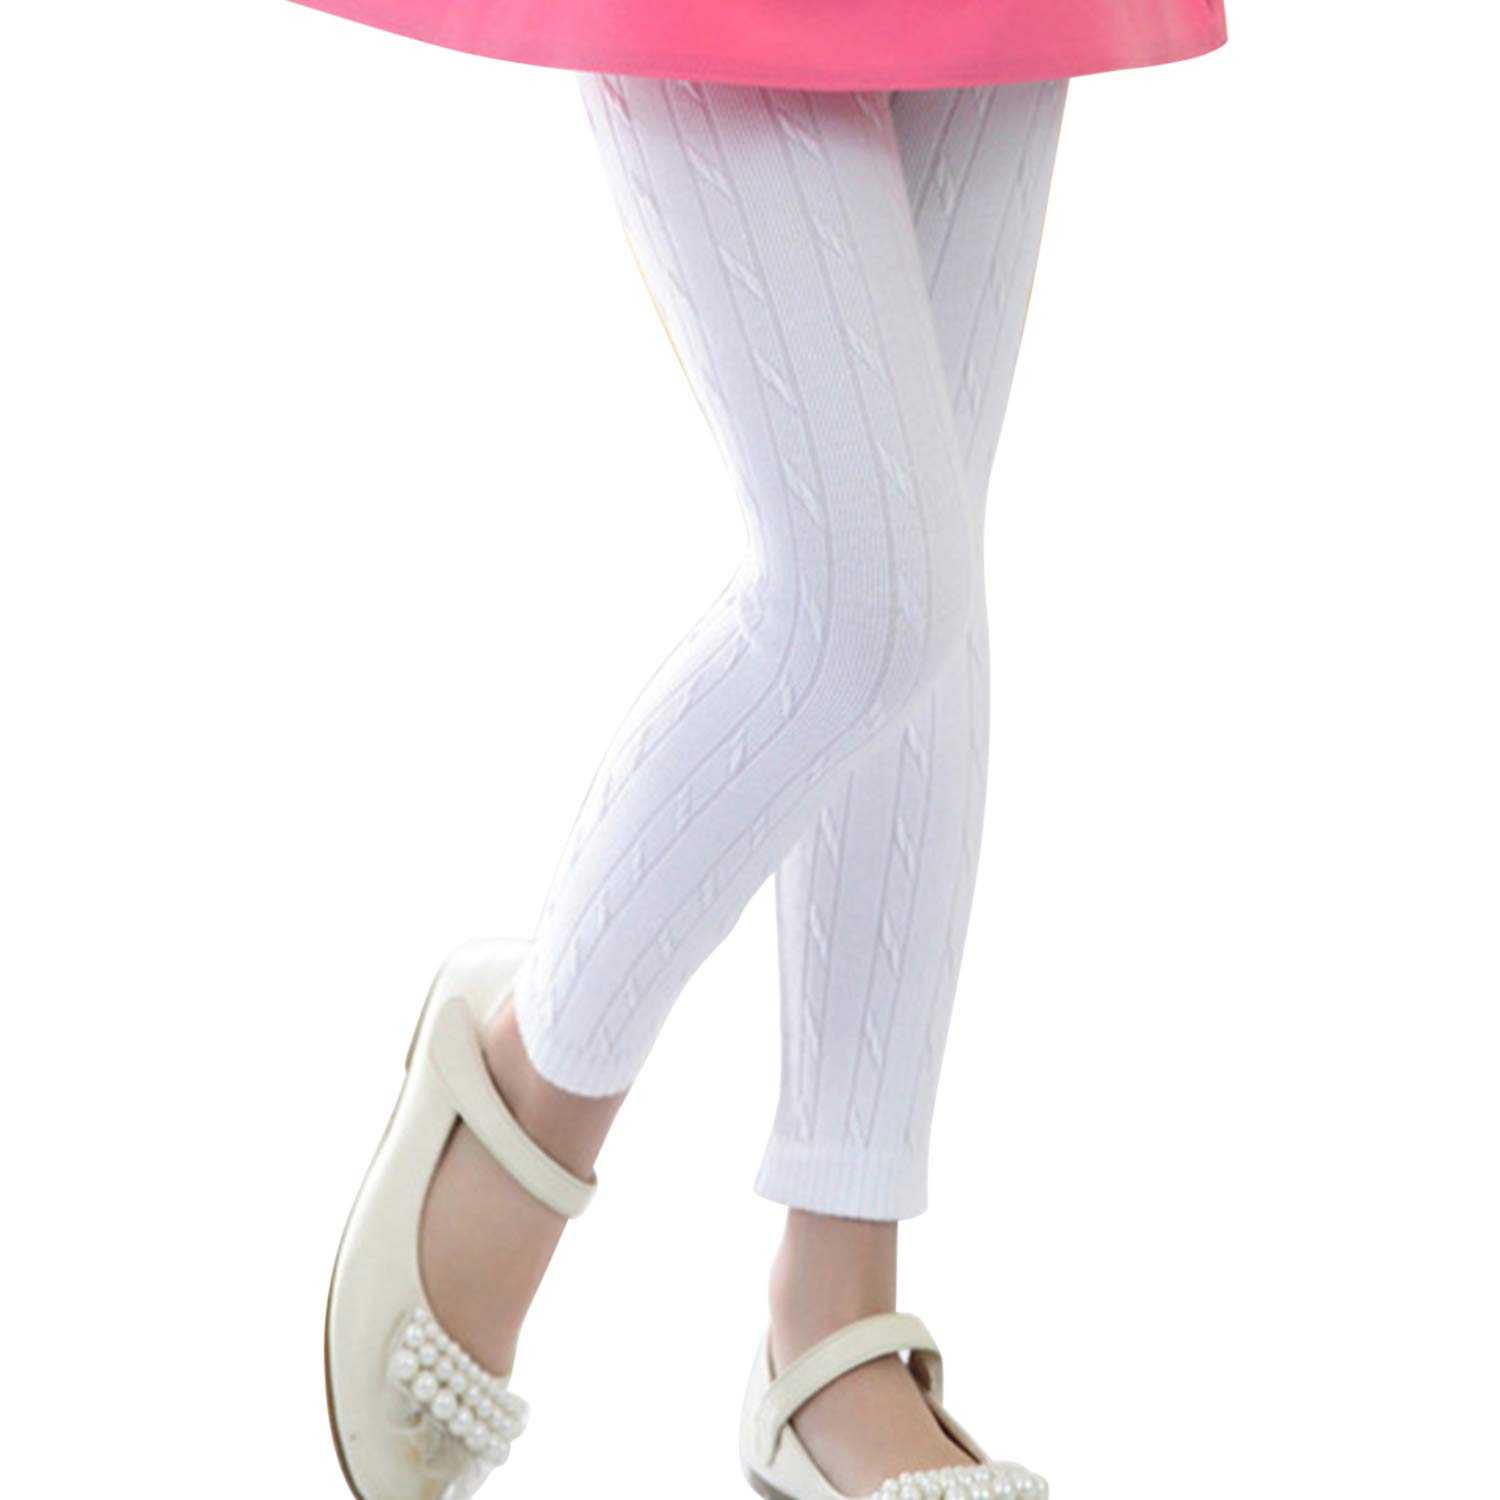 Evelin LEE Baby Girls Cute Cable Knit Cotton Tights Solid Pantyhose Stockings Leggings